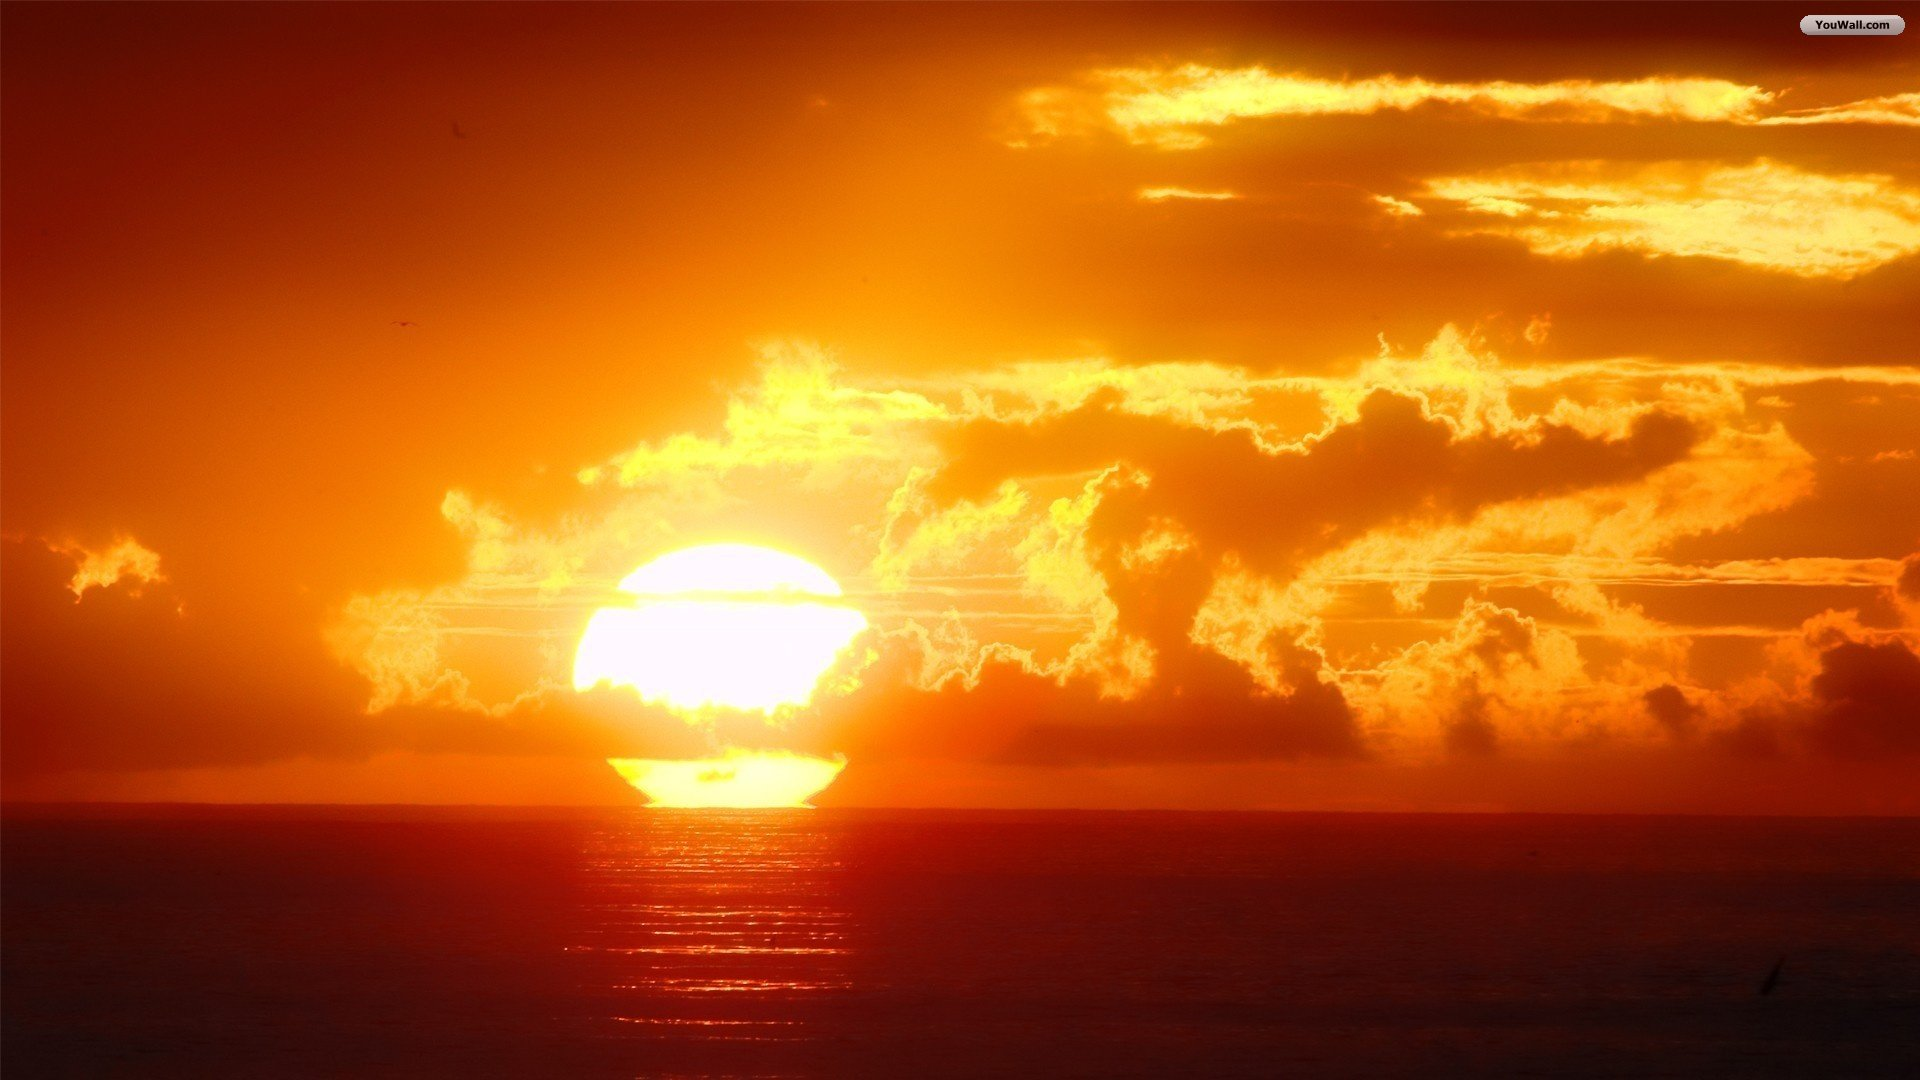 Orange sunset hd wallpapers